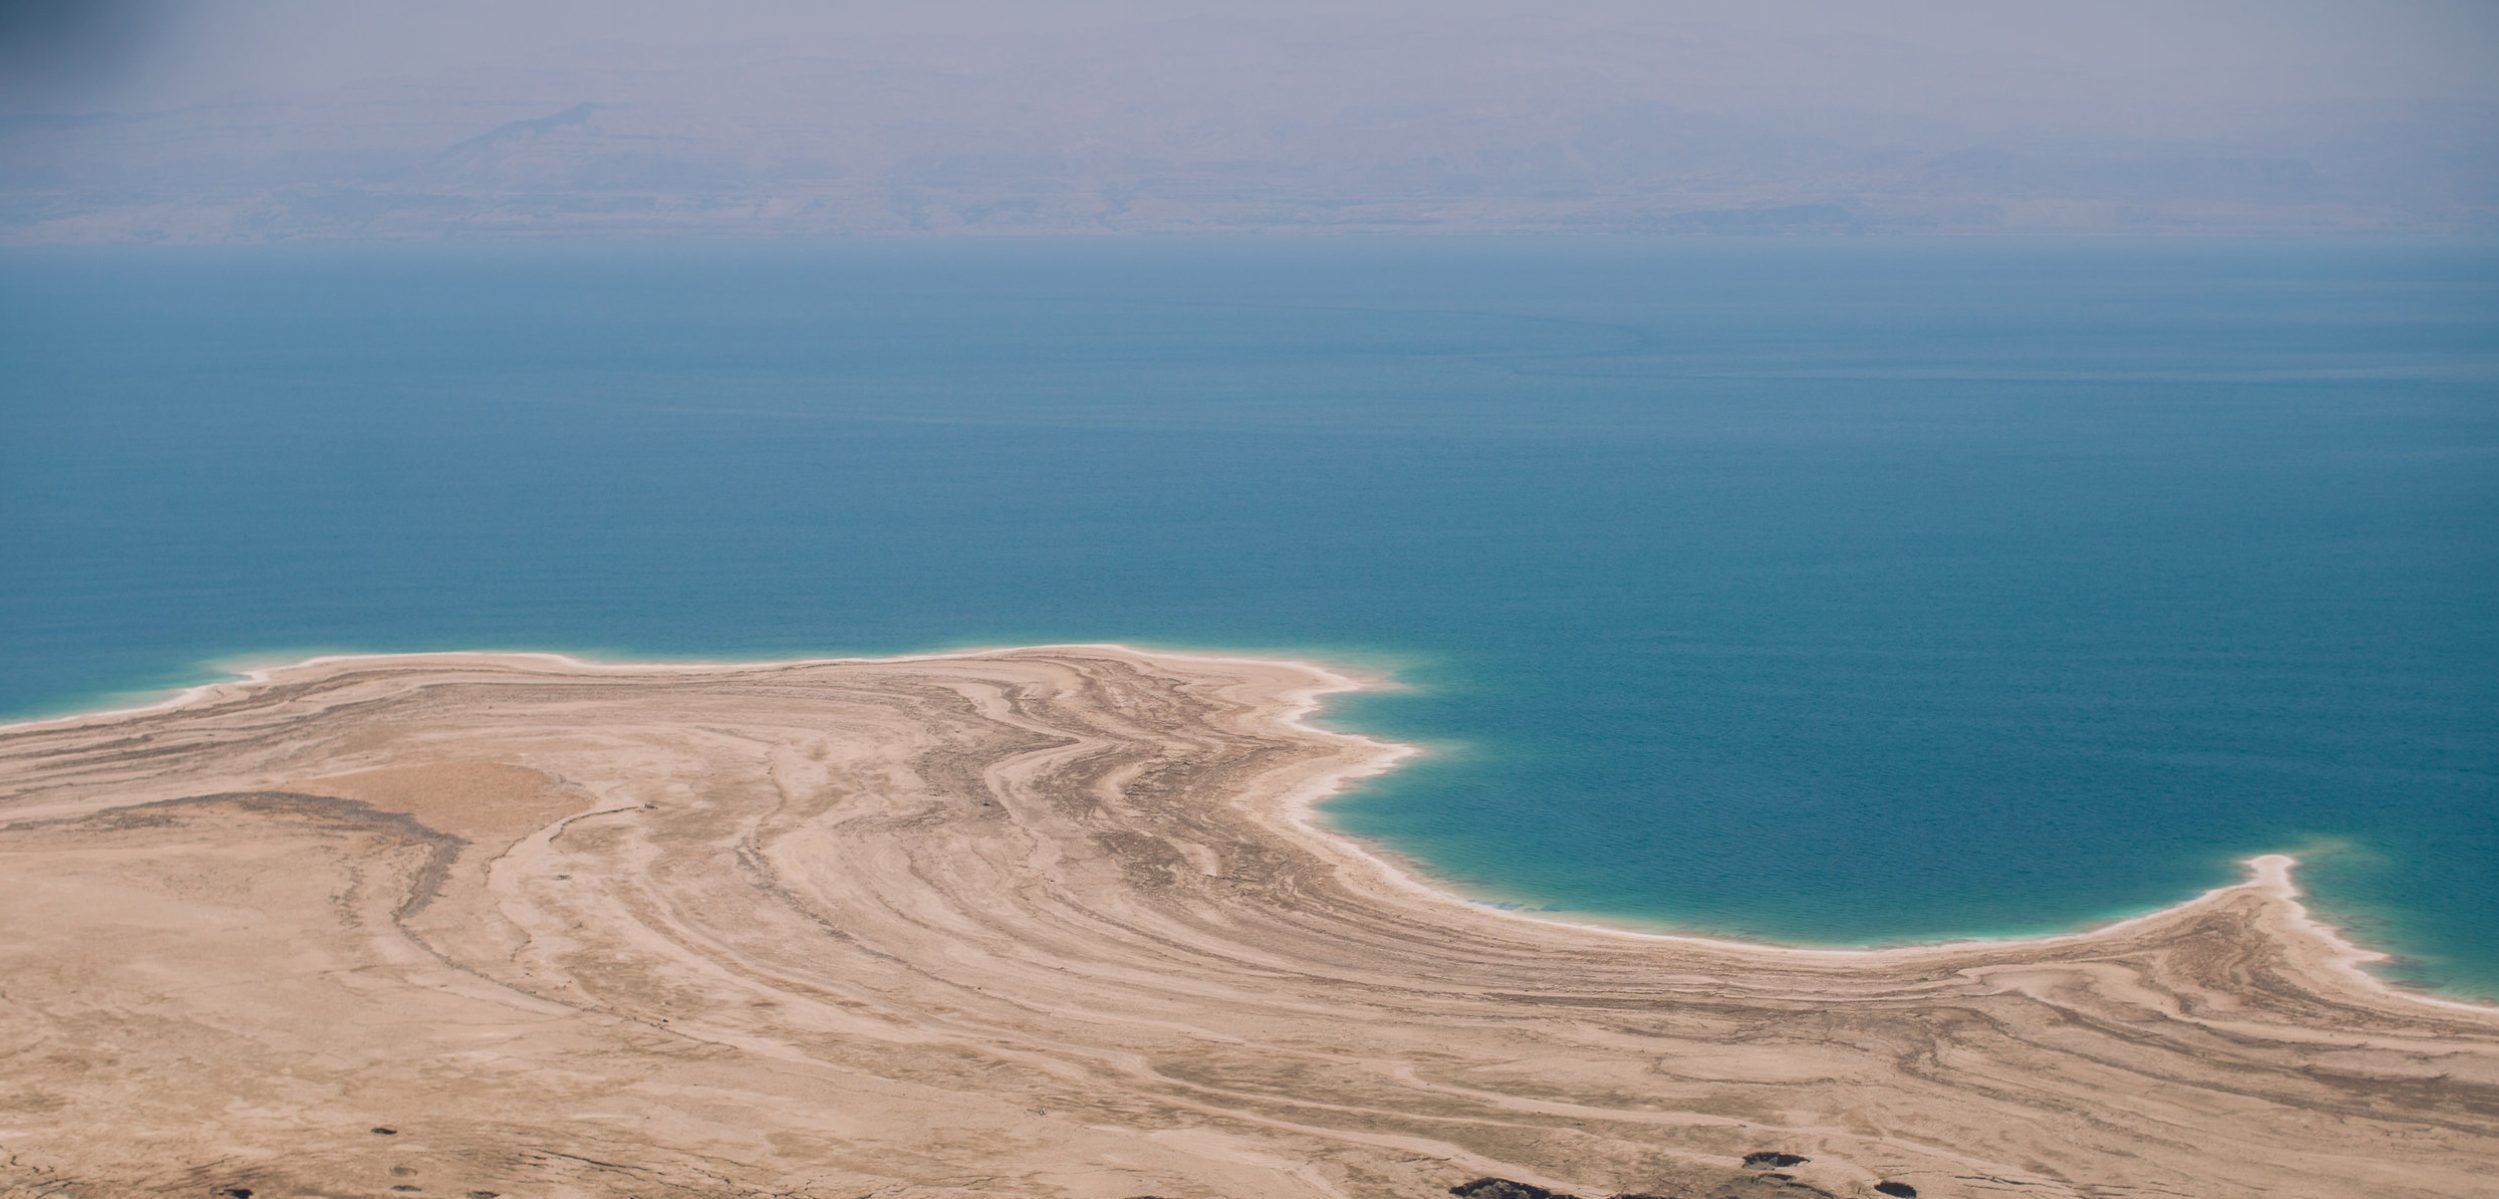 THE DEAD SEA - The Dead Sea shrinks every year, and the ground around it becomes unstable sinkholes, as we could see from the road where I took this landscape shot. Guests enjoy themselves, despite the increasingly long walks to the shoreline.